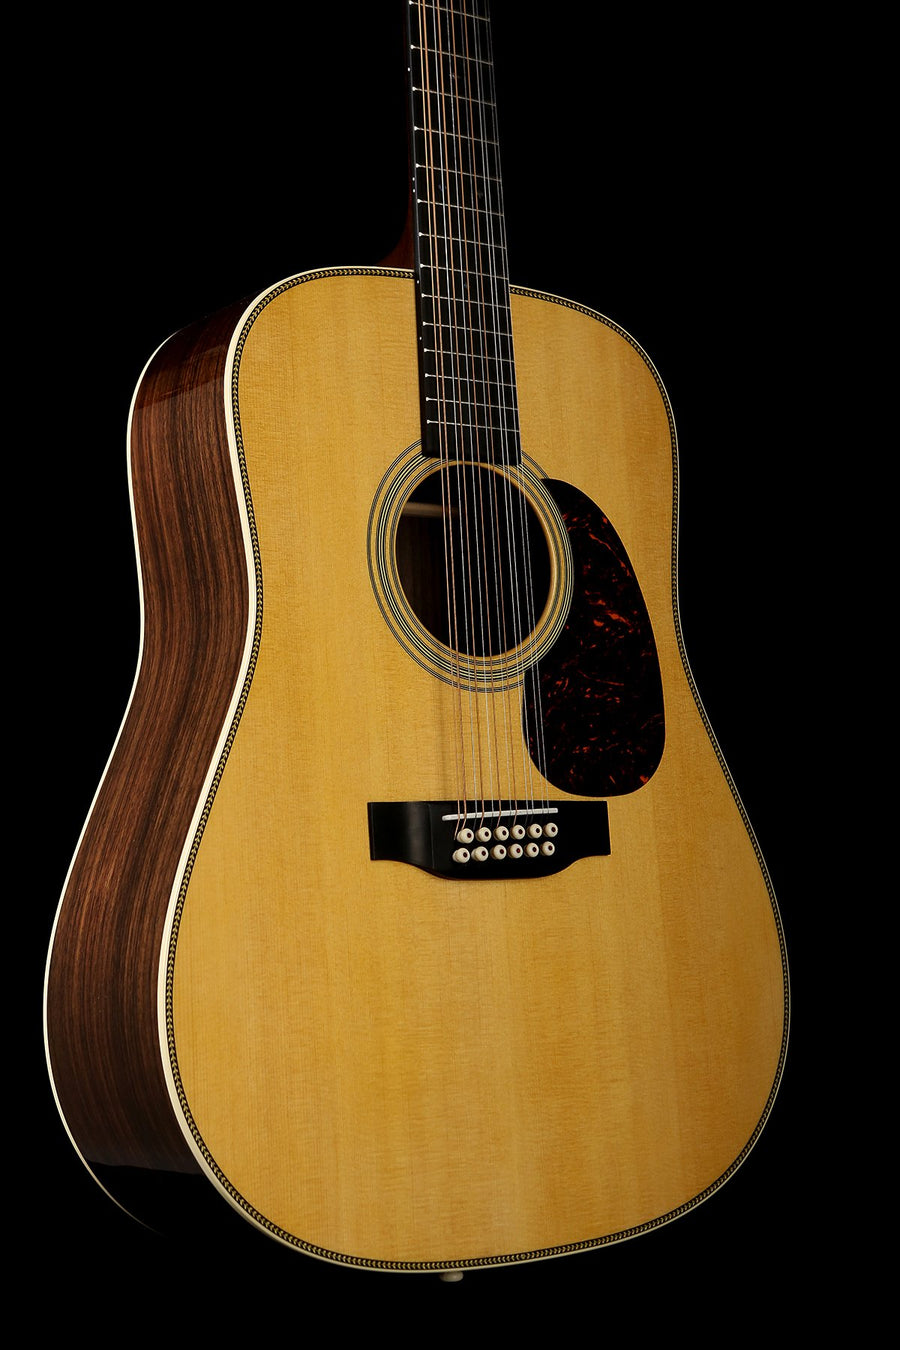 Martin HD12-28 12-String Acoustic Guitar: Standard Series Reimagined